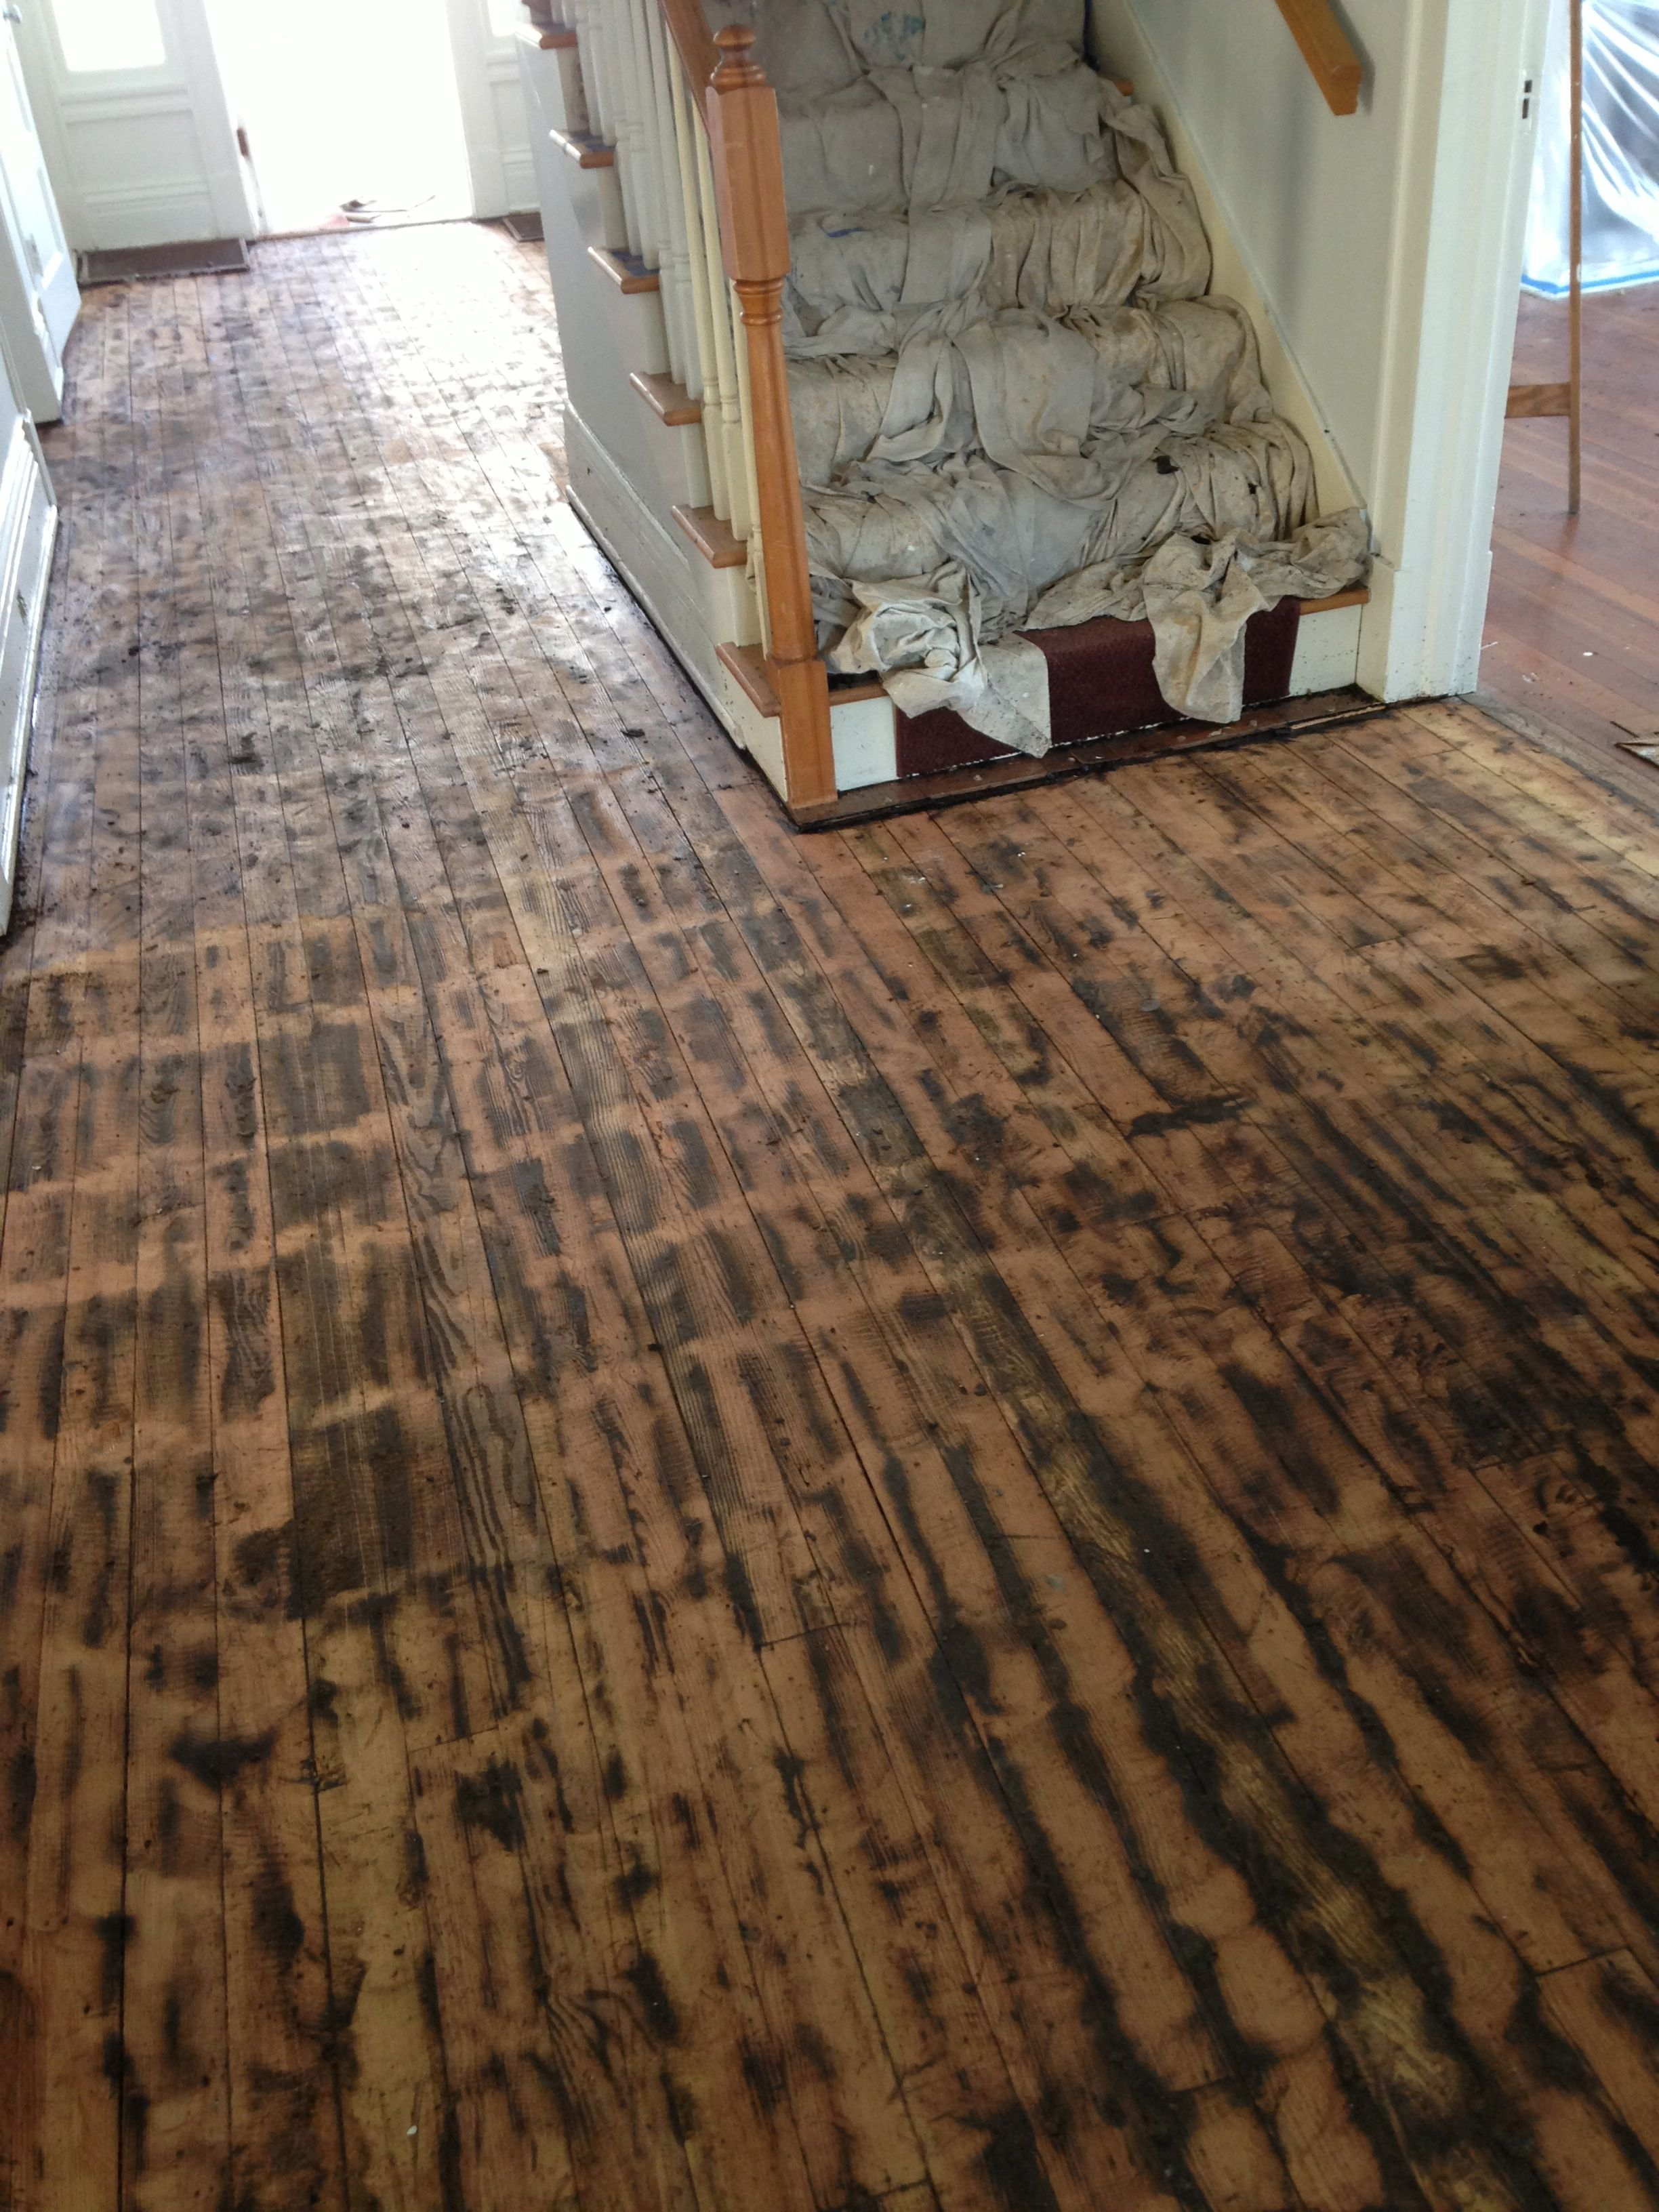 Pictured are hardwood floors partially covered with tar.